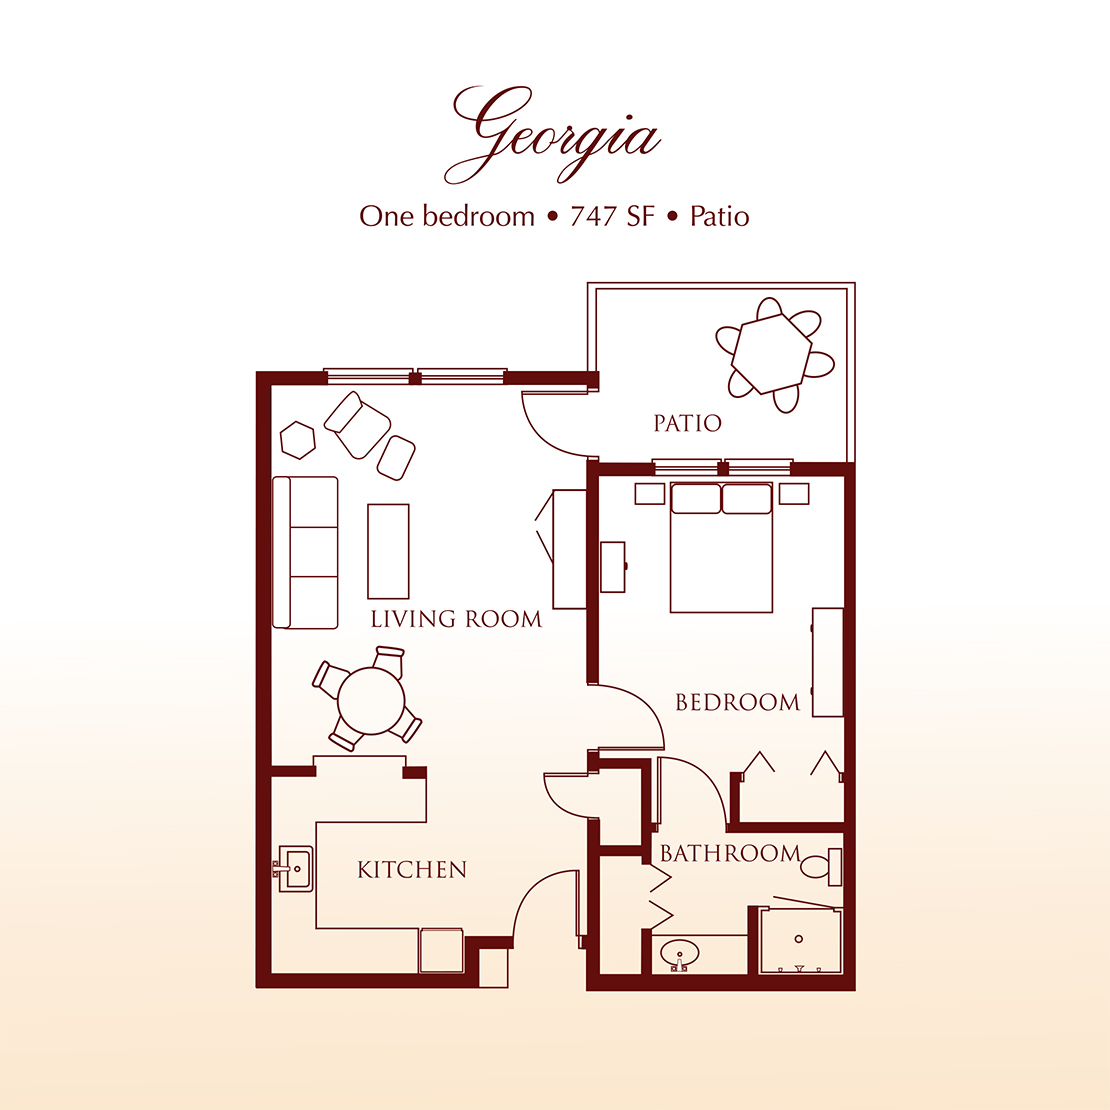 Floor plan - The Georgia One Bedroom Suite at Detray's Colonial Inn